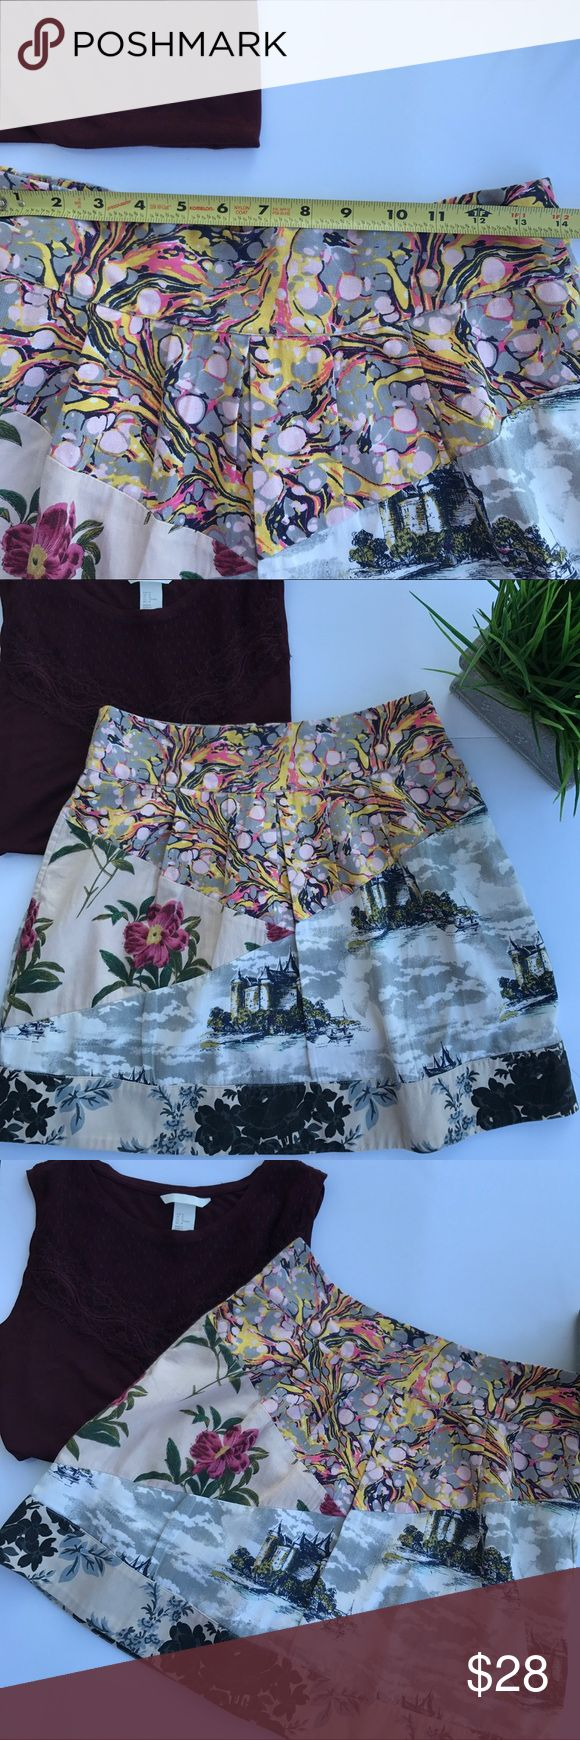 Anthropologie Leifnote Floral Skirt Beautiful patch pattern Anthropologie Leifnote Floral Castle scenic Skirt. Perfect for Spring. This skirt feature side pockets and a back zipper.  Material: Cotton and Acetate lining Anthropologie Skirts Midi